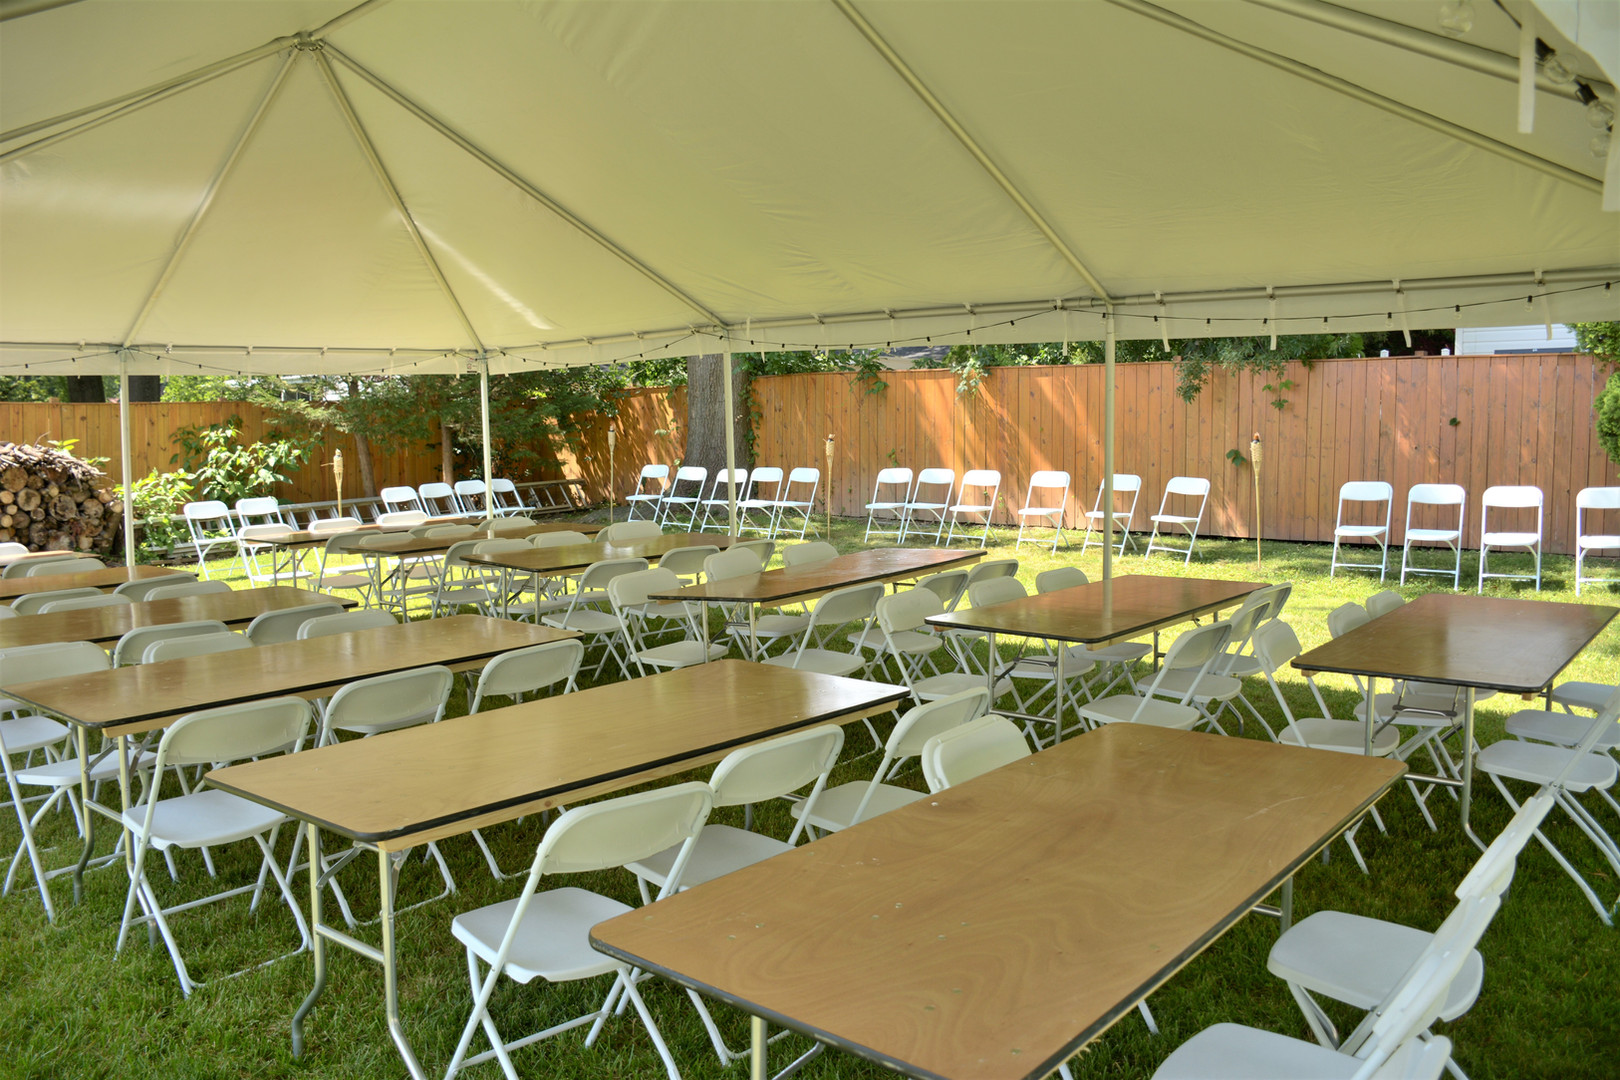 Tent & Tables and Chairs